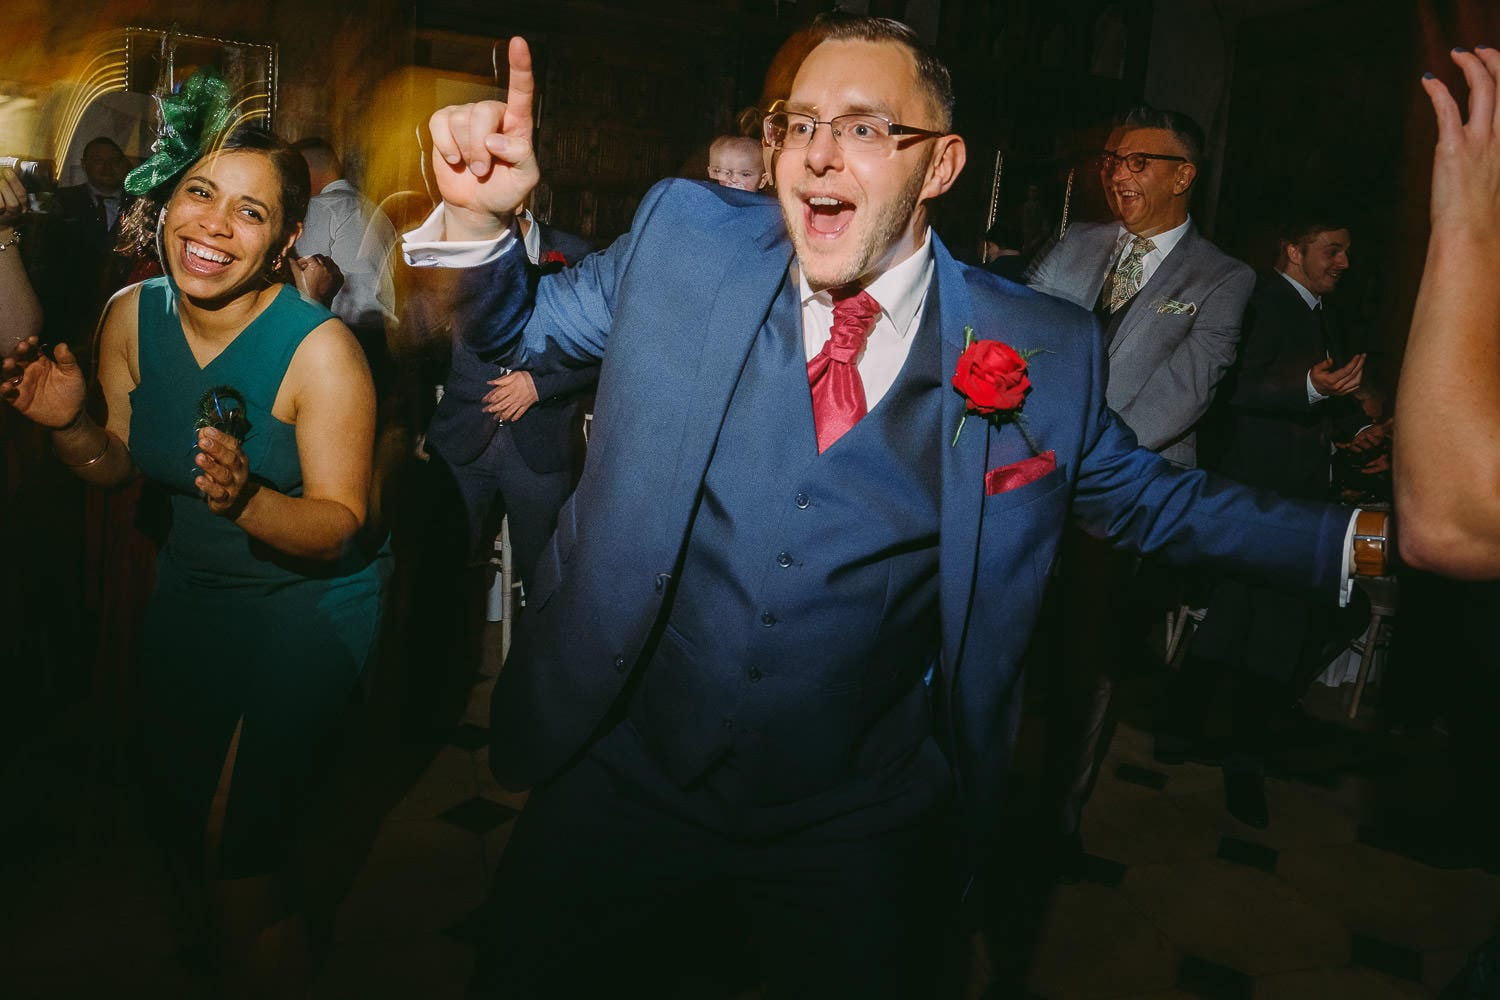 The best man dancing